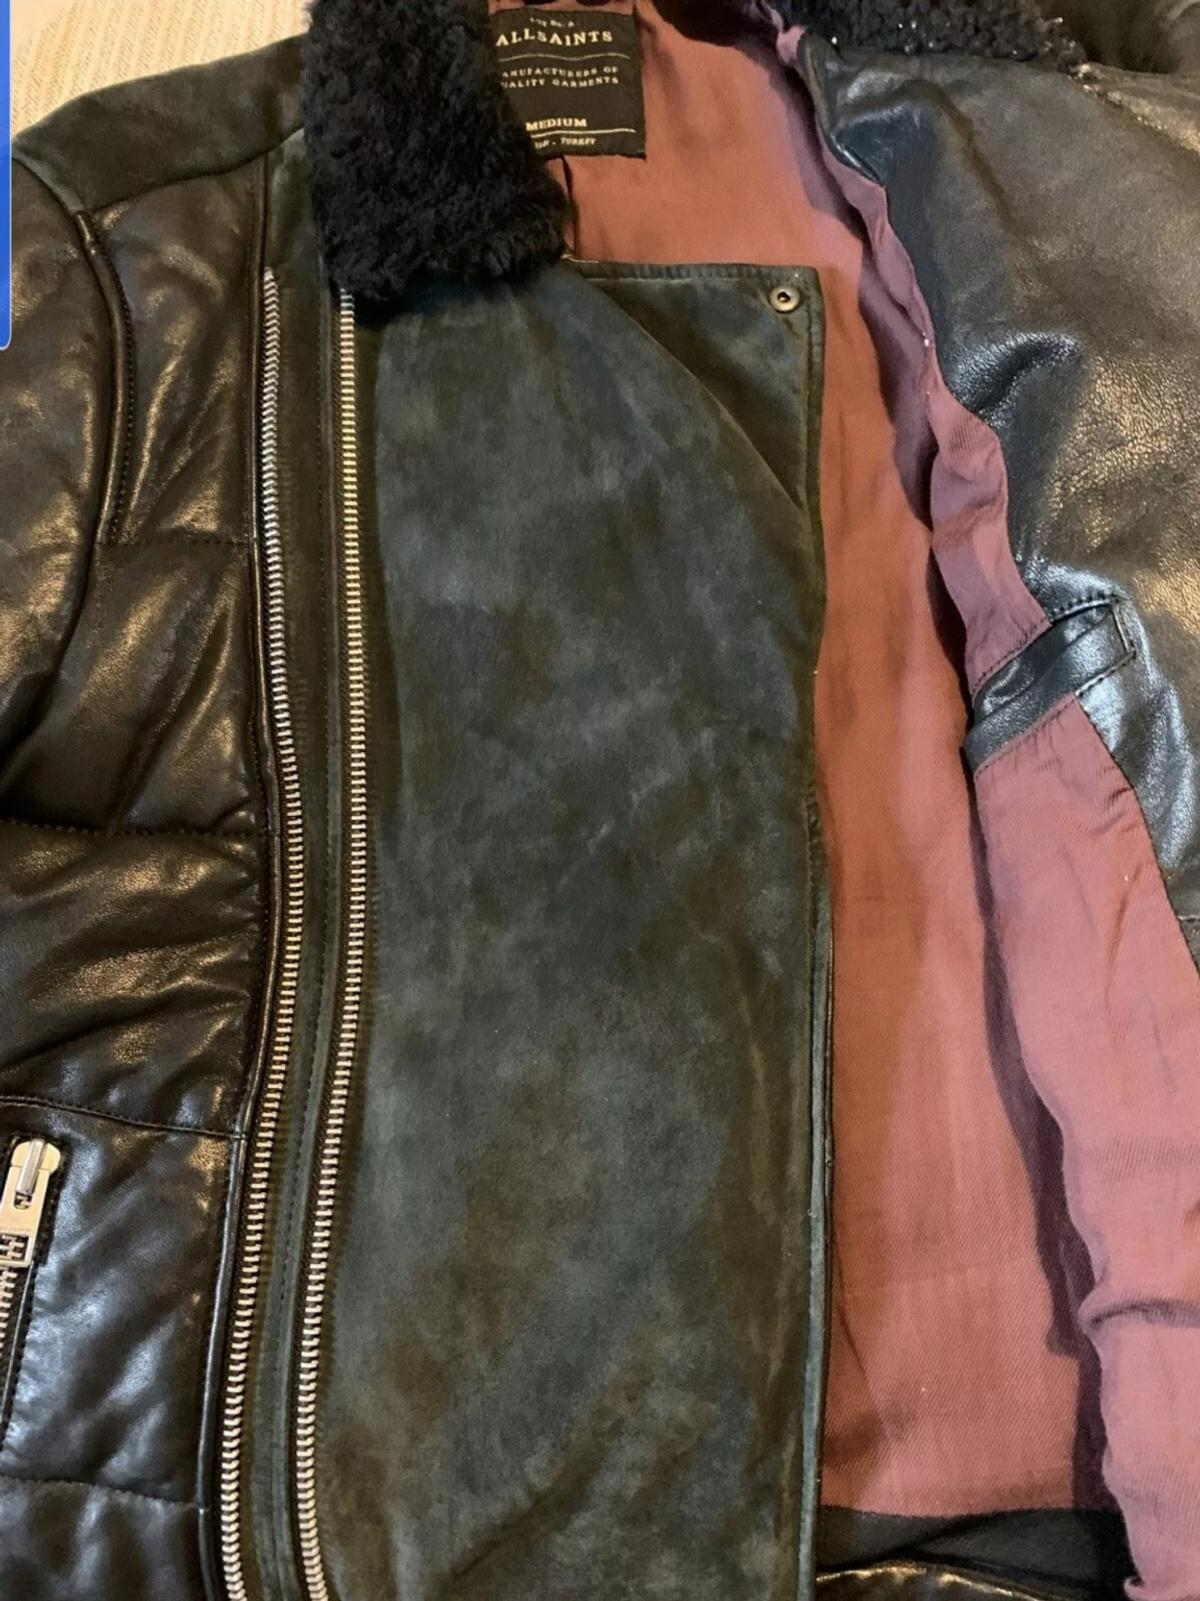 Allsaints leather puffa biker jacket with double zips and waist zip. Upper back suede. size M but can fit slim fit L p2p 22inches A rare peice. Excellent condition like new. grab a bargain